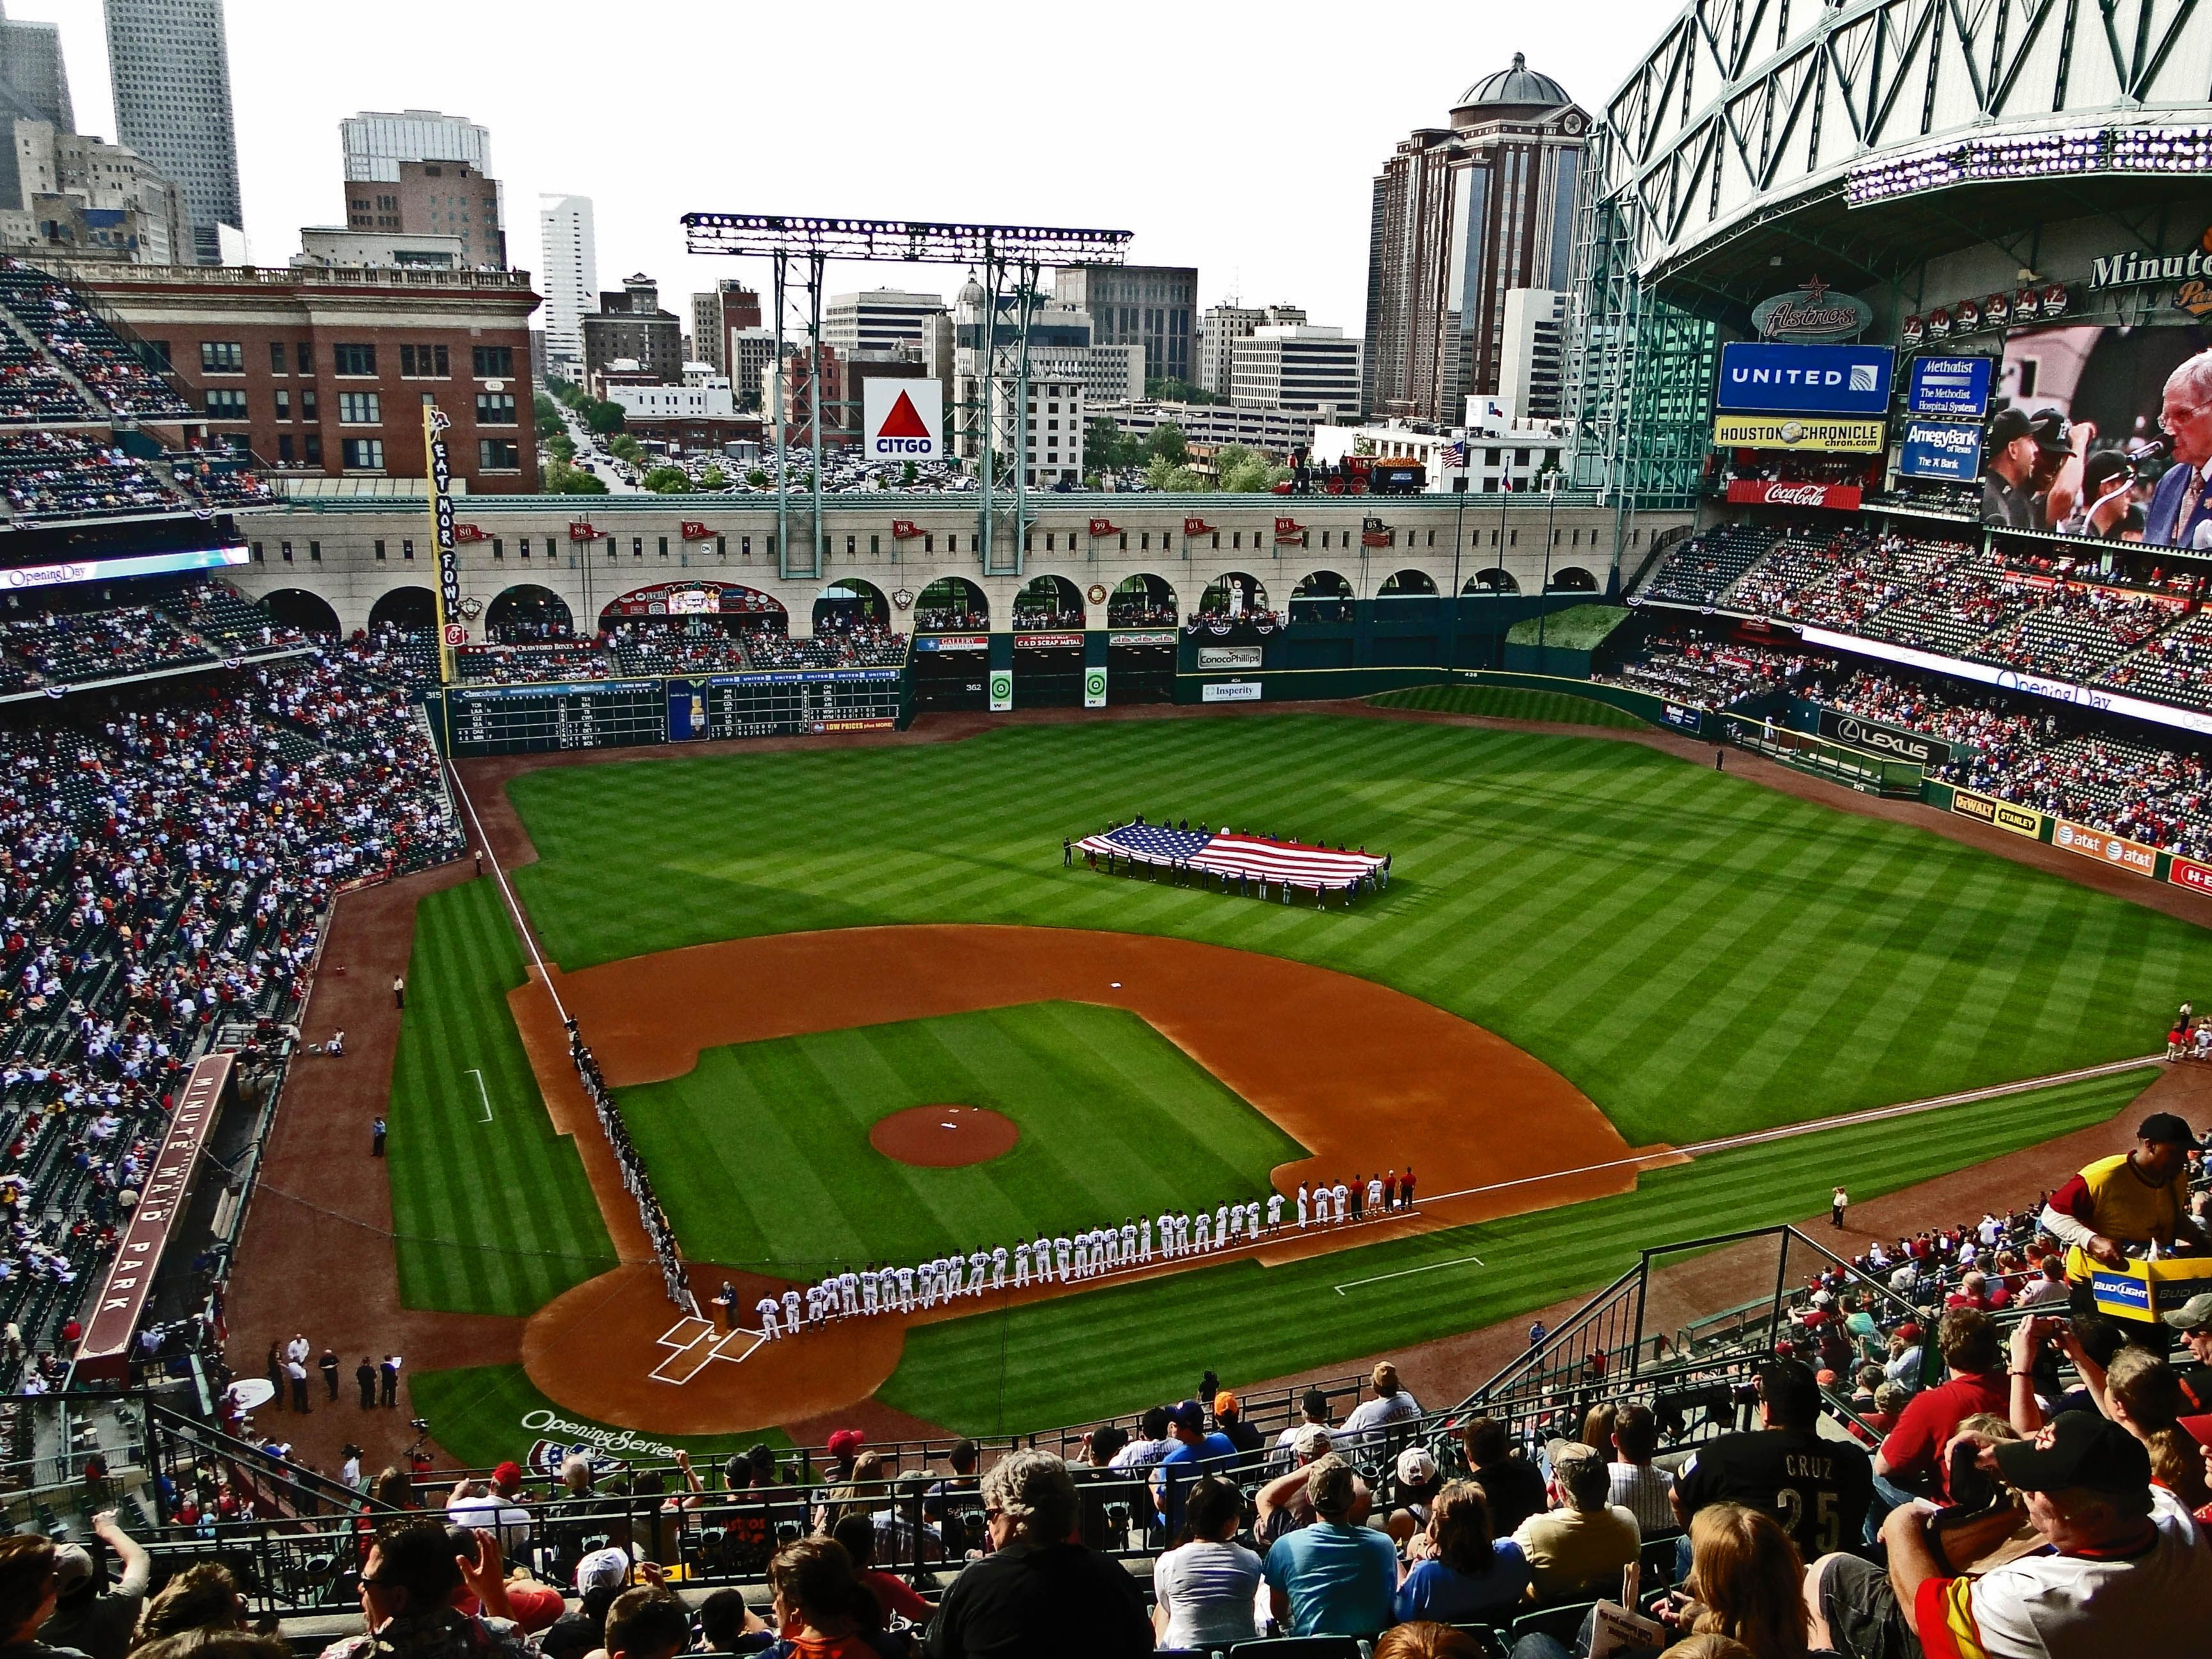 Minute Maid Park In Houston Love This Photo Because I Was There For Opening Day It Was A Minute Maid Park Minute Maid Park Houston Best Baseball Stadiums